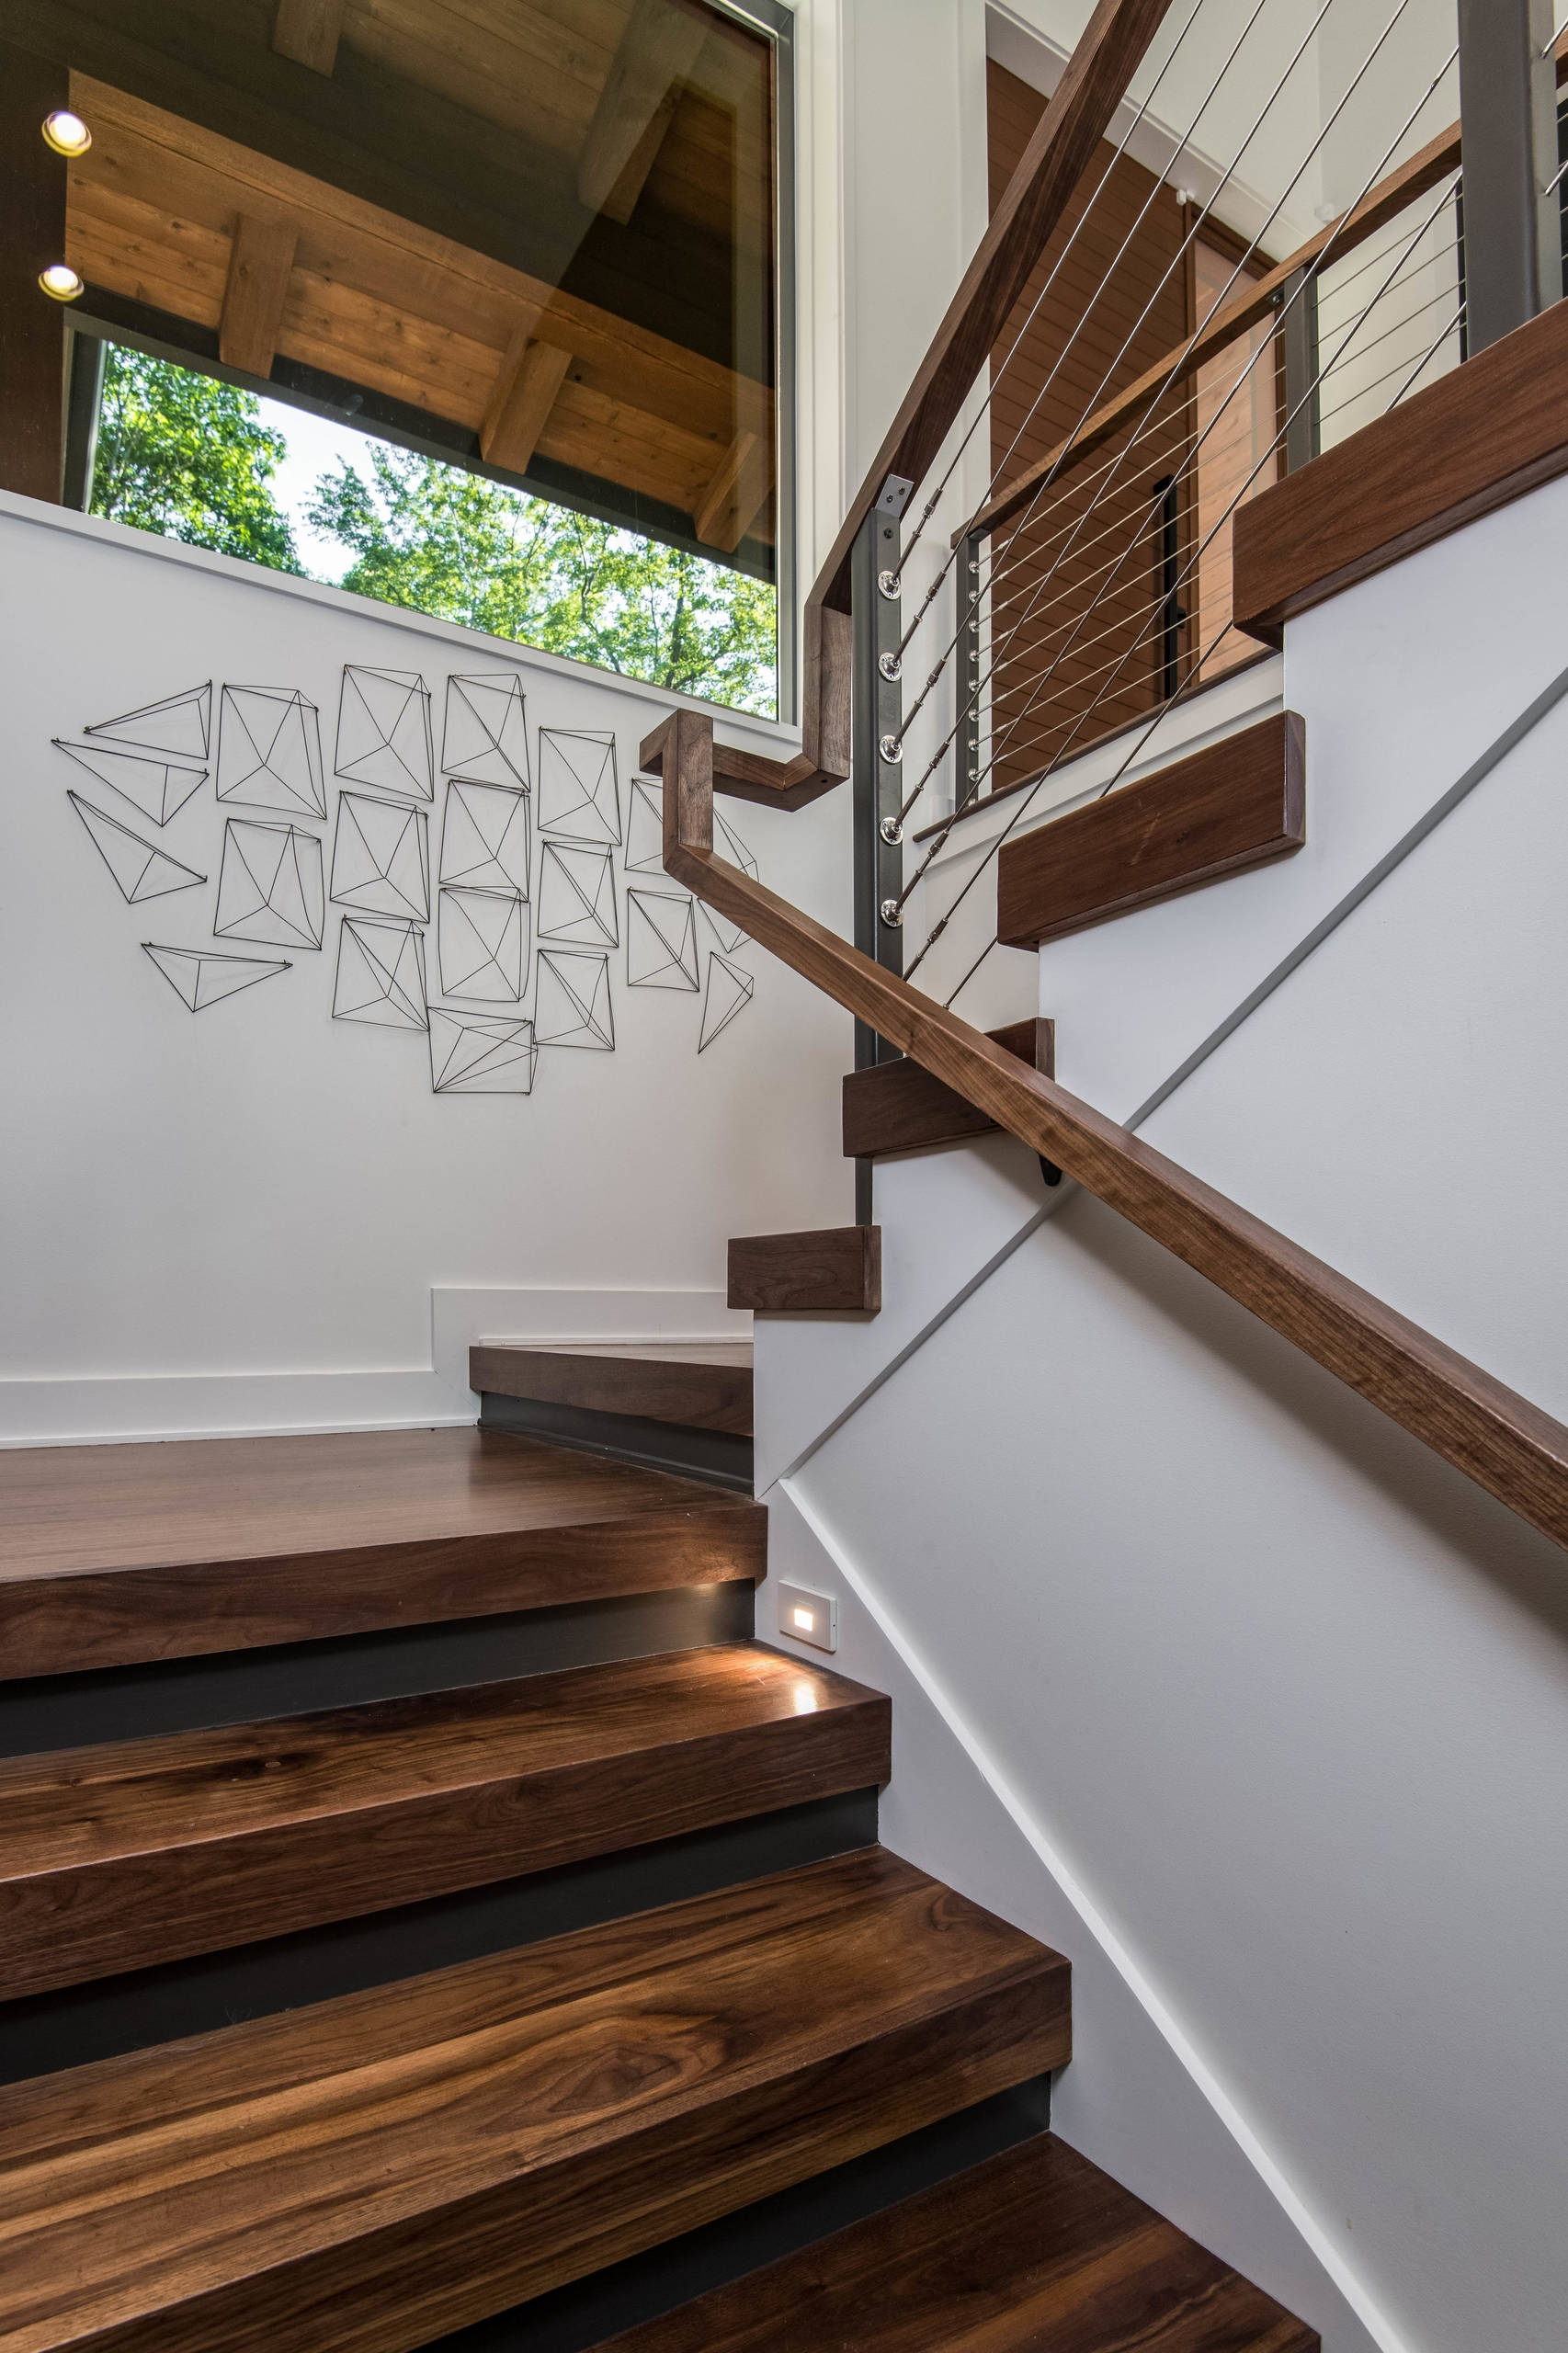 75 Beautiful Modern Staircase Pictures Ideas September 2020   Beautiful House Stairs Design   American   Fancy   Simple   Grill   Rich